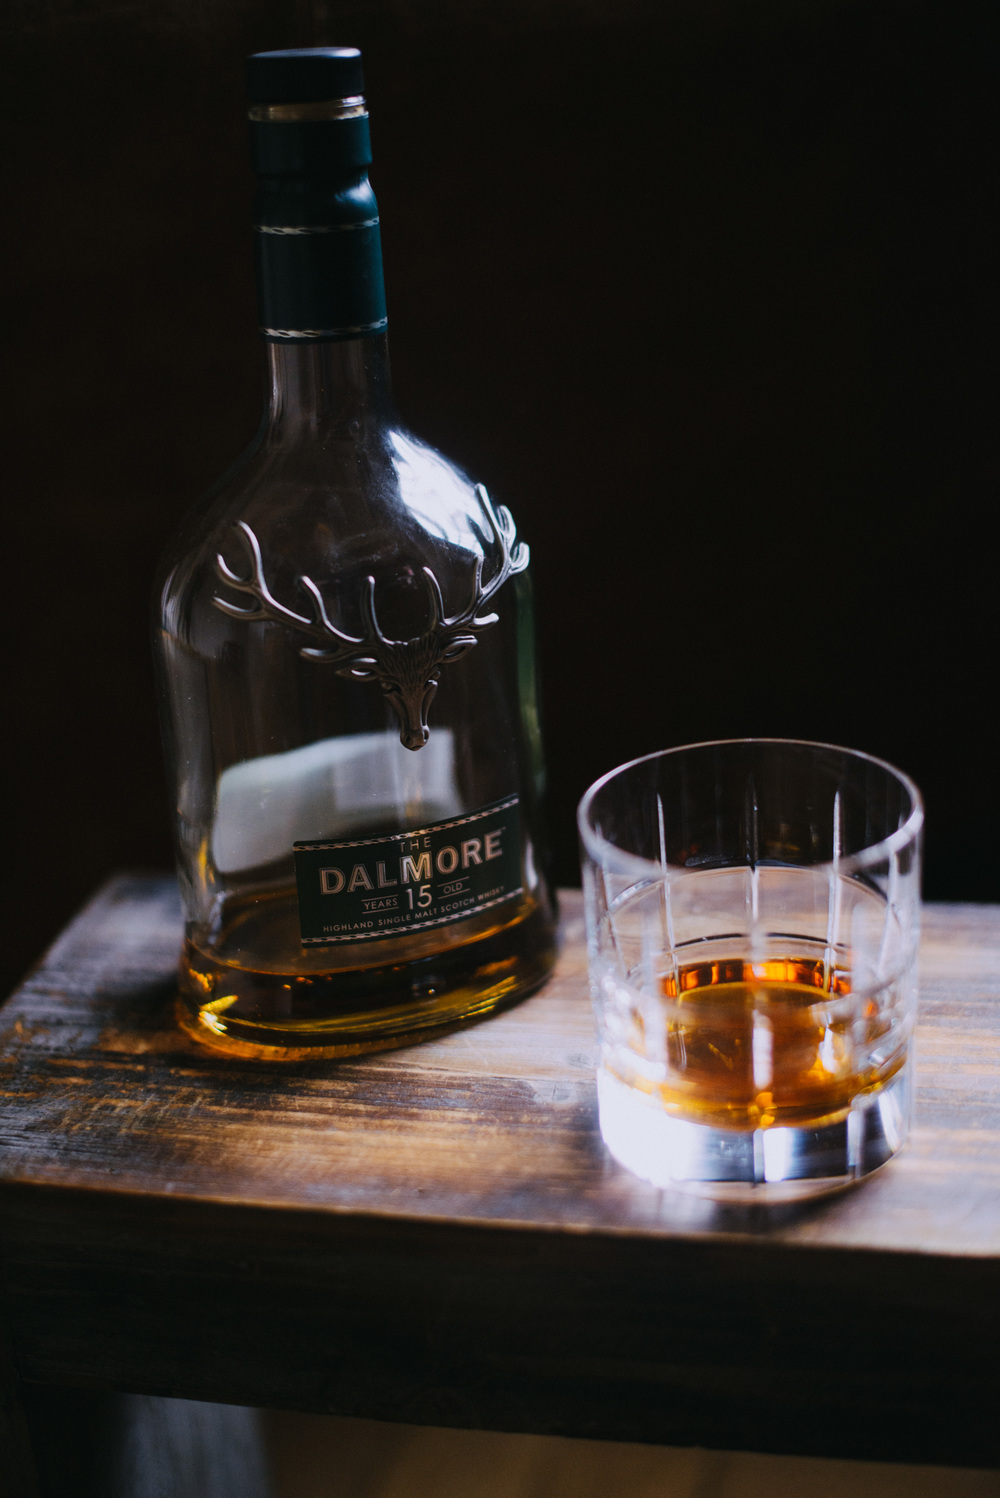 Dalmore Whiskey, Commercial Photography